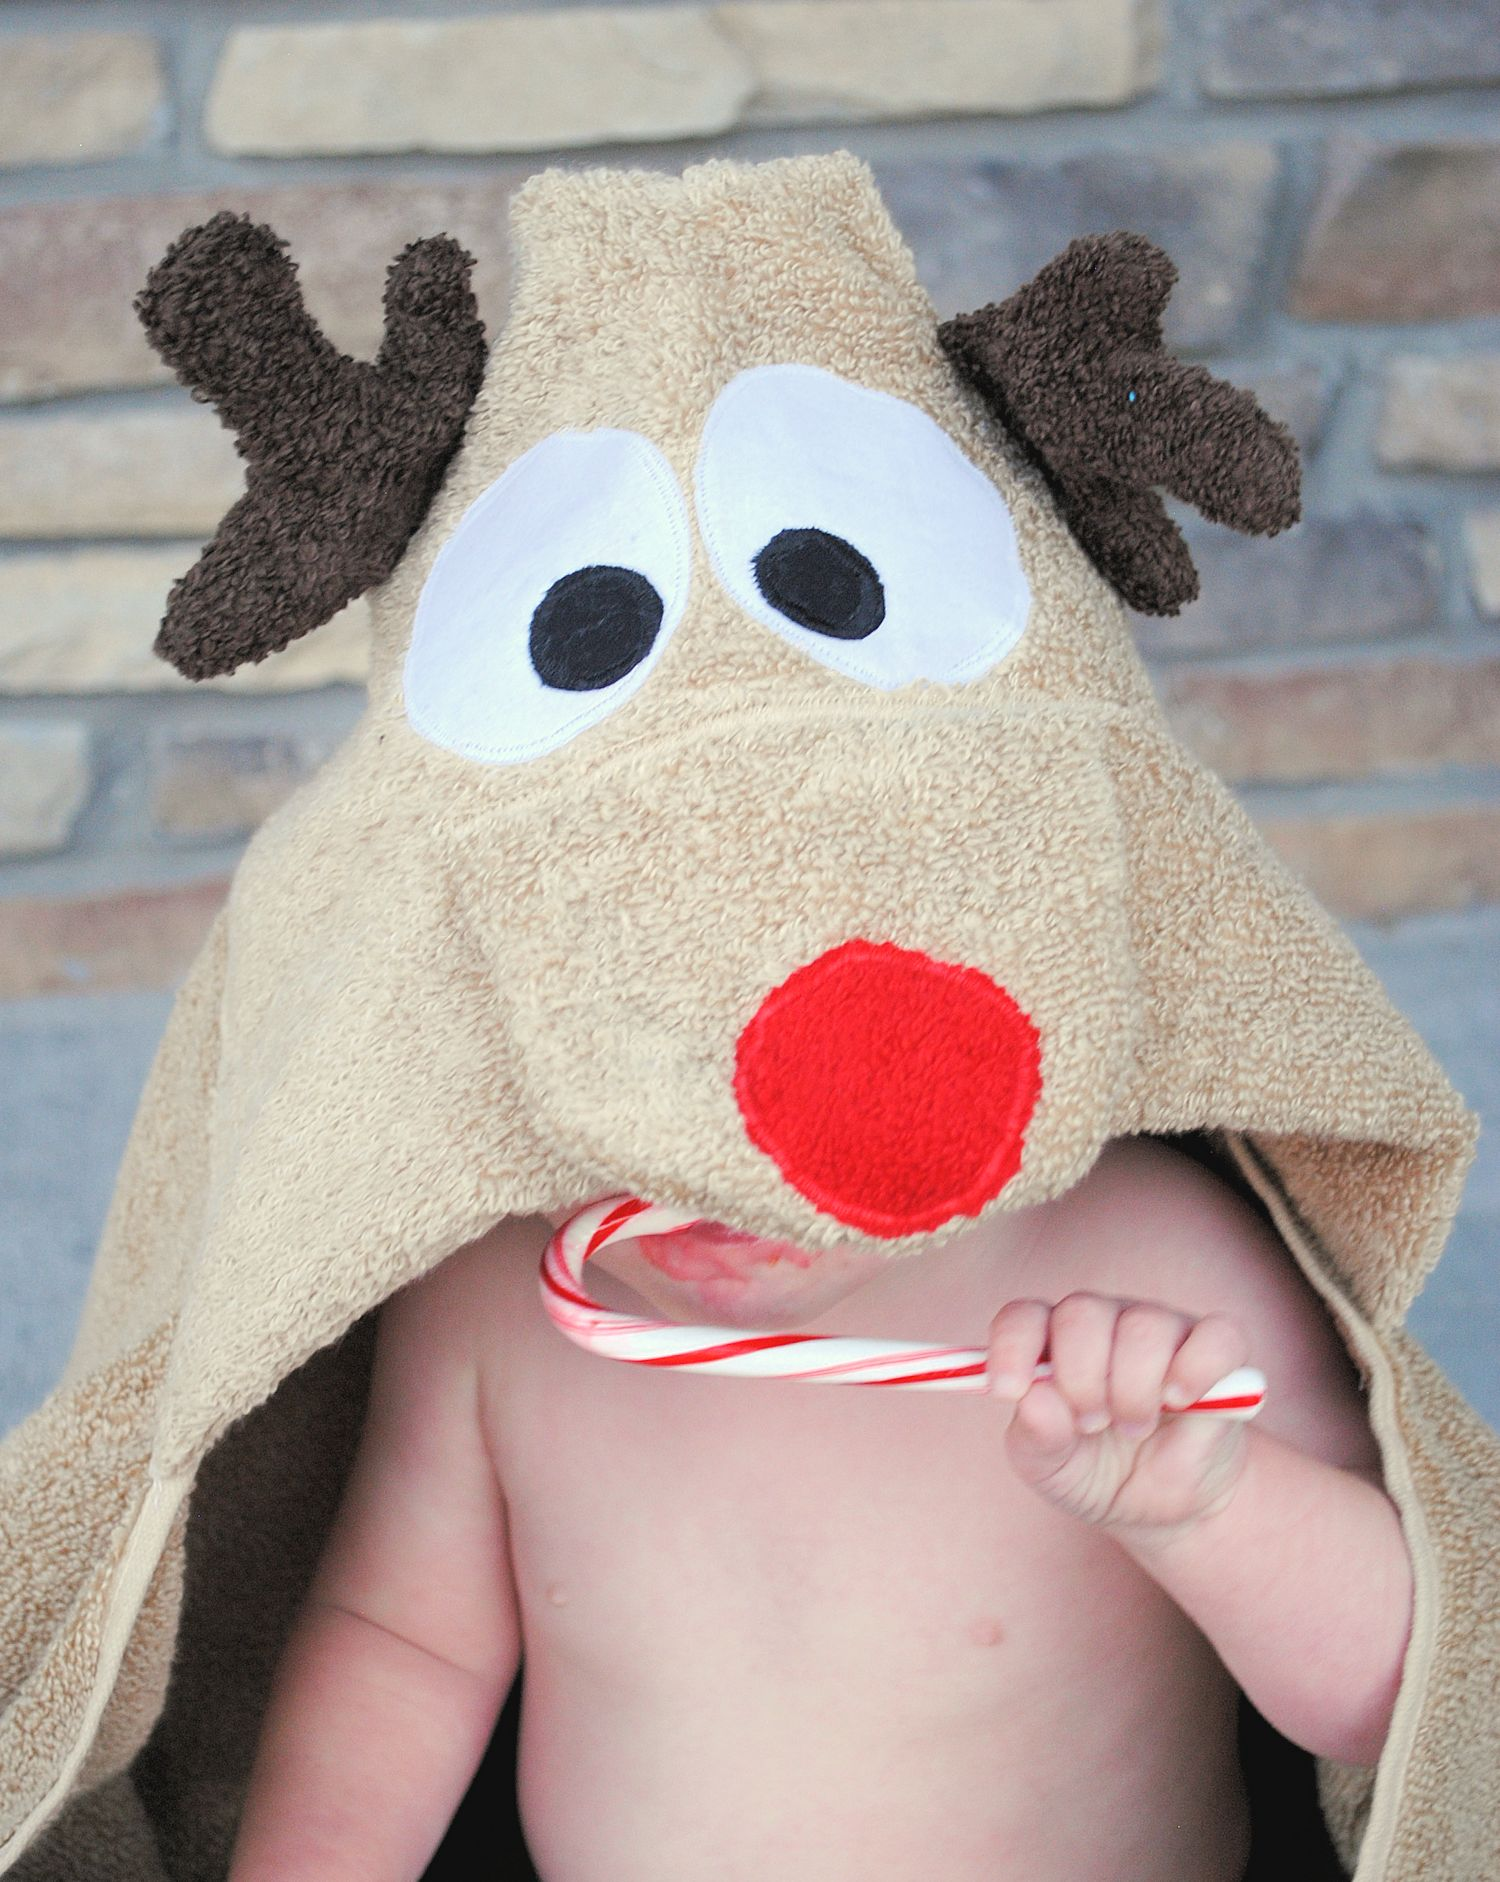 Reindeer Hooded Towel | DIY Christmas Gifts For Everyone In Your List